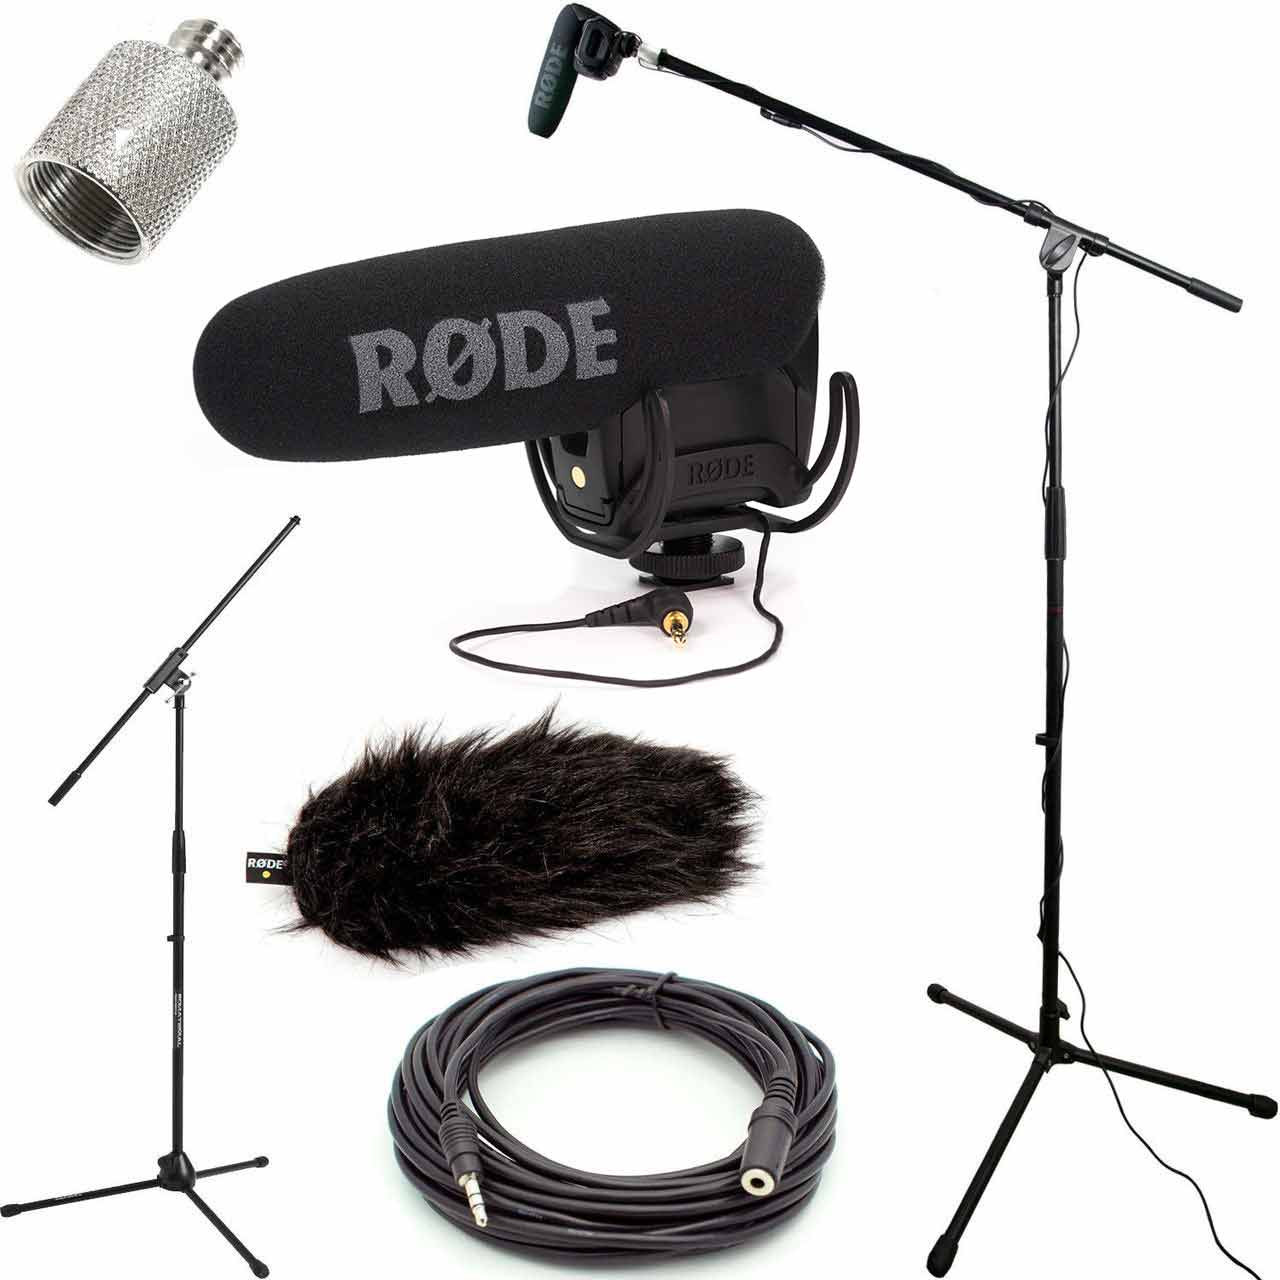 Steady Rode Shotgun Video Mic Selected Material Cameras & Photo